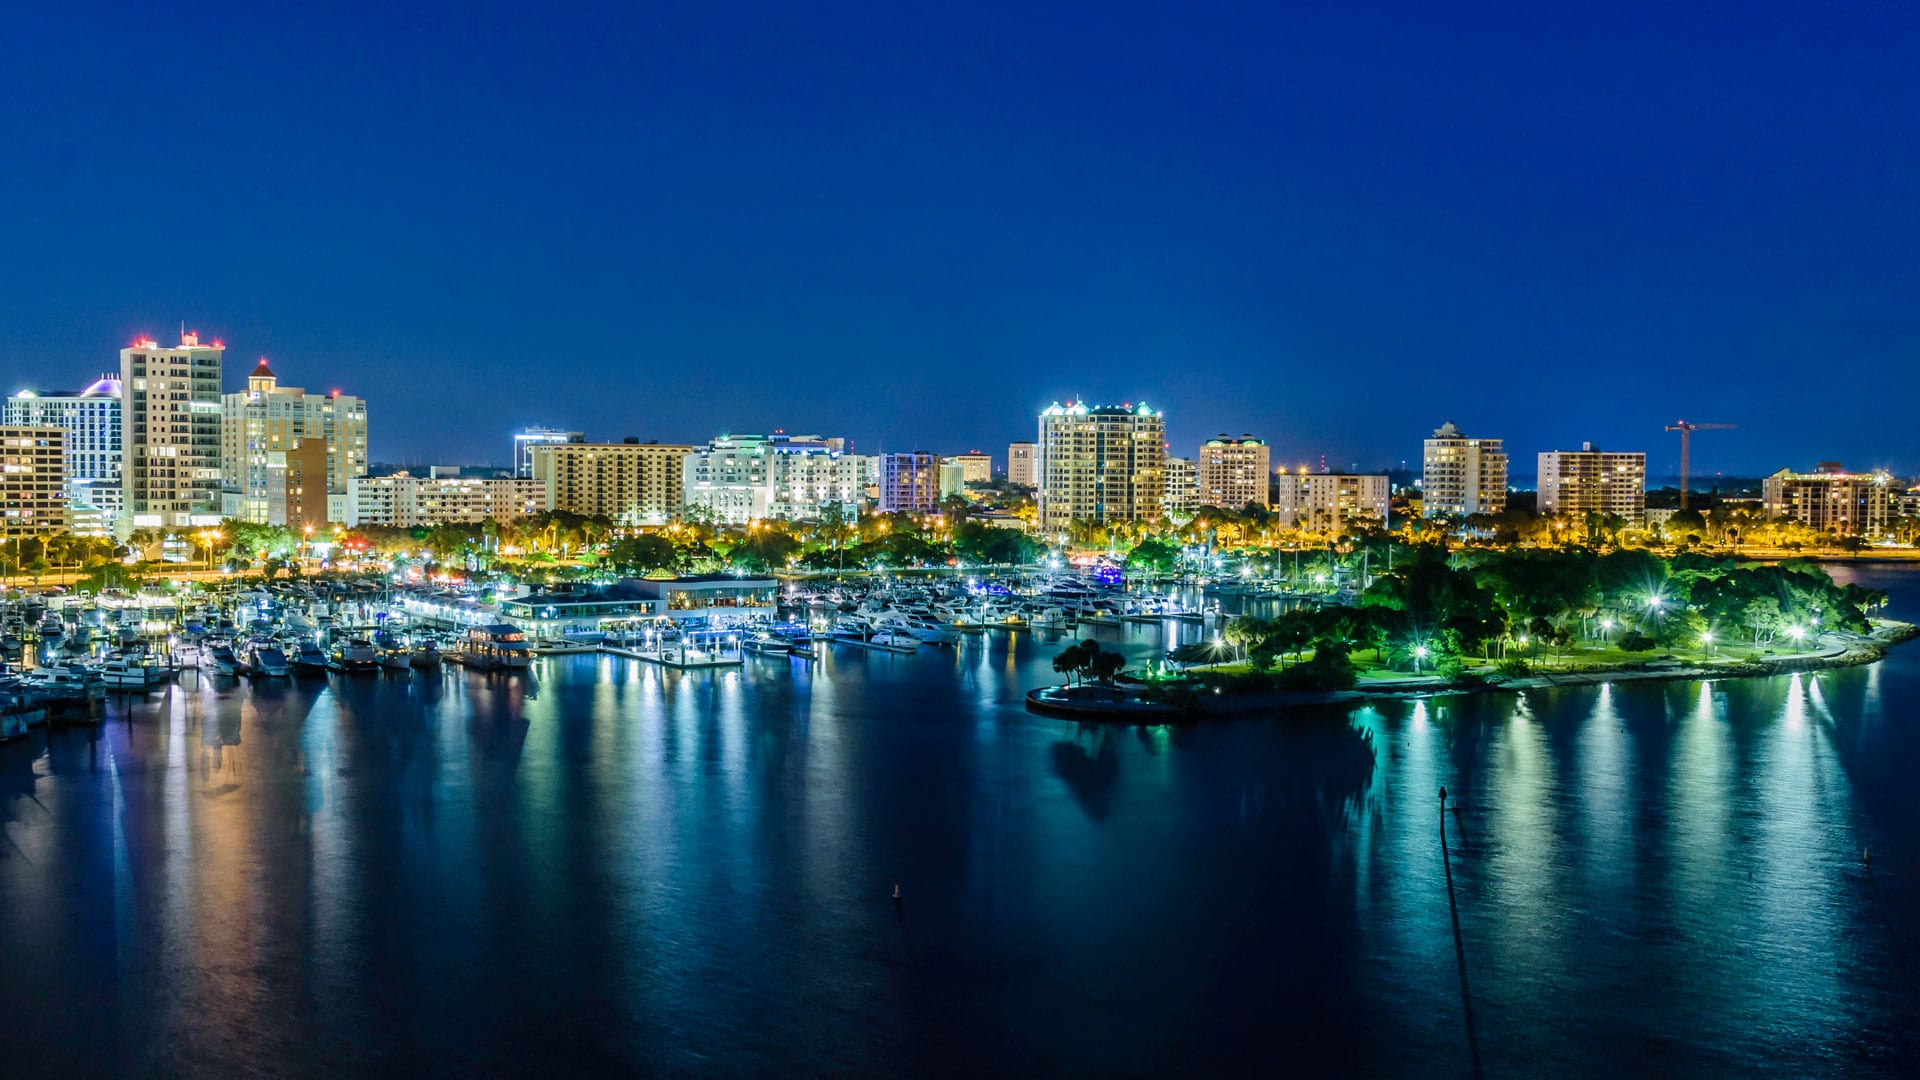 location-6-sarasota-skyline-night